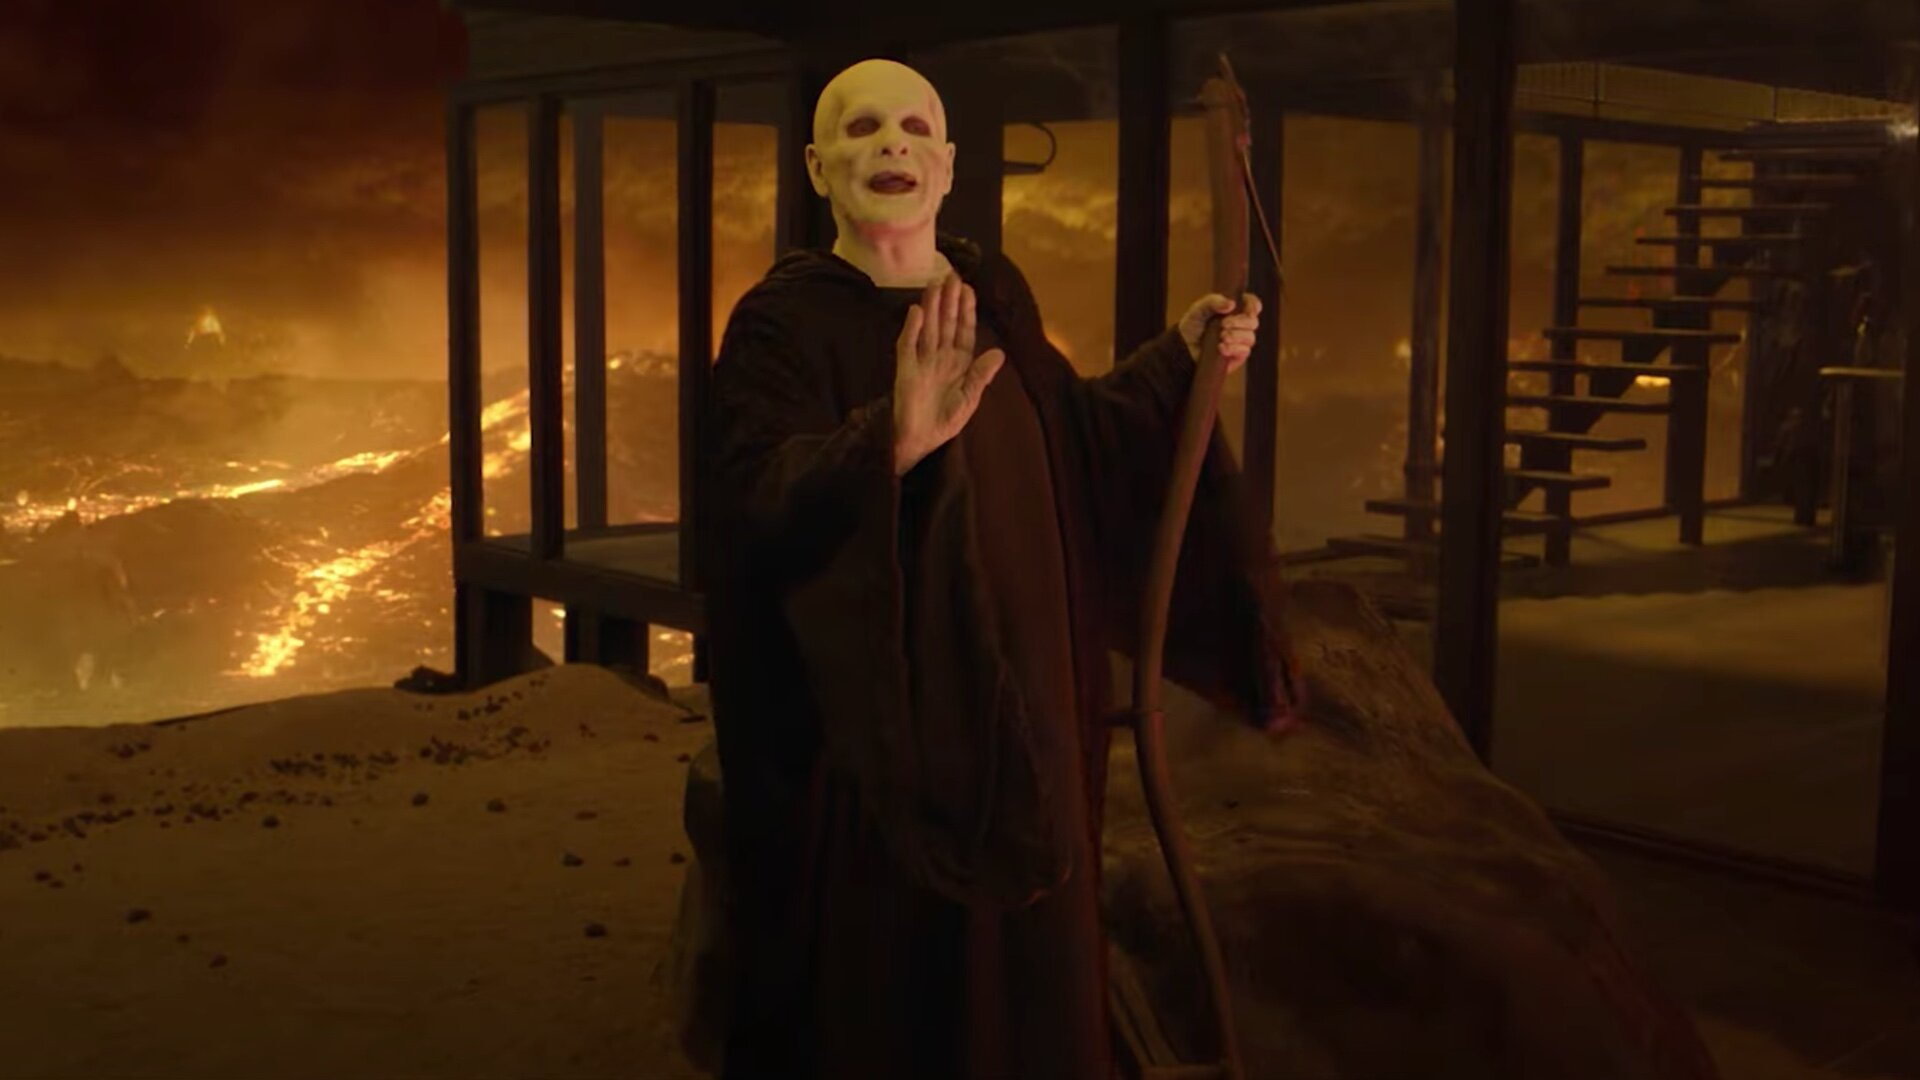 Bill and Ted Reunite with Death in New Clip From BILL & TED FACE THE MUSIC